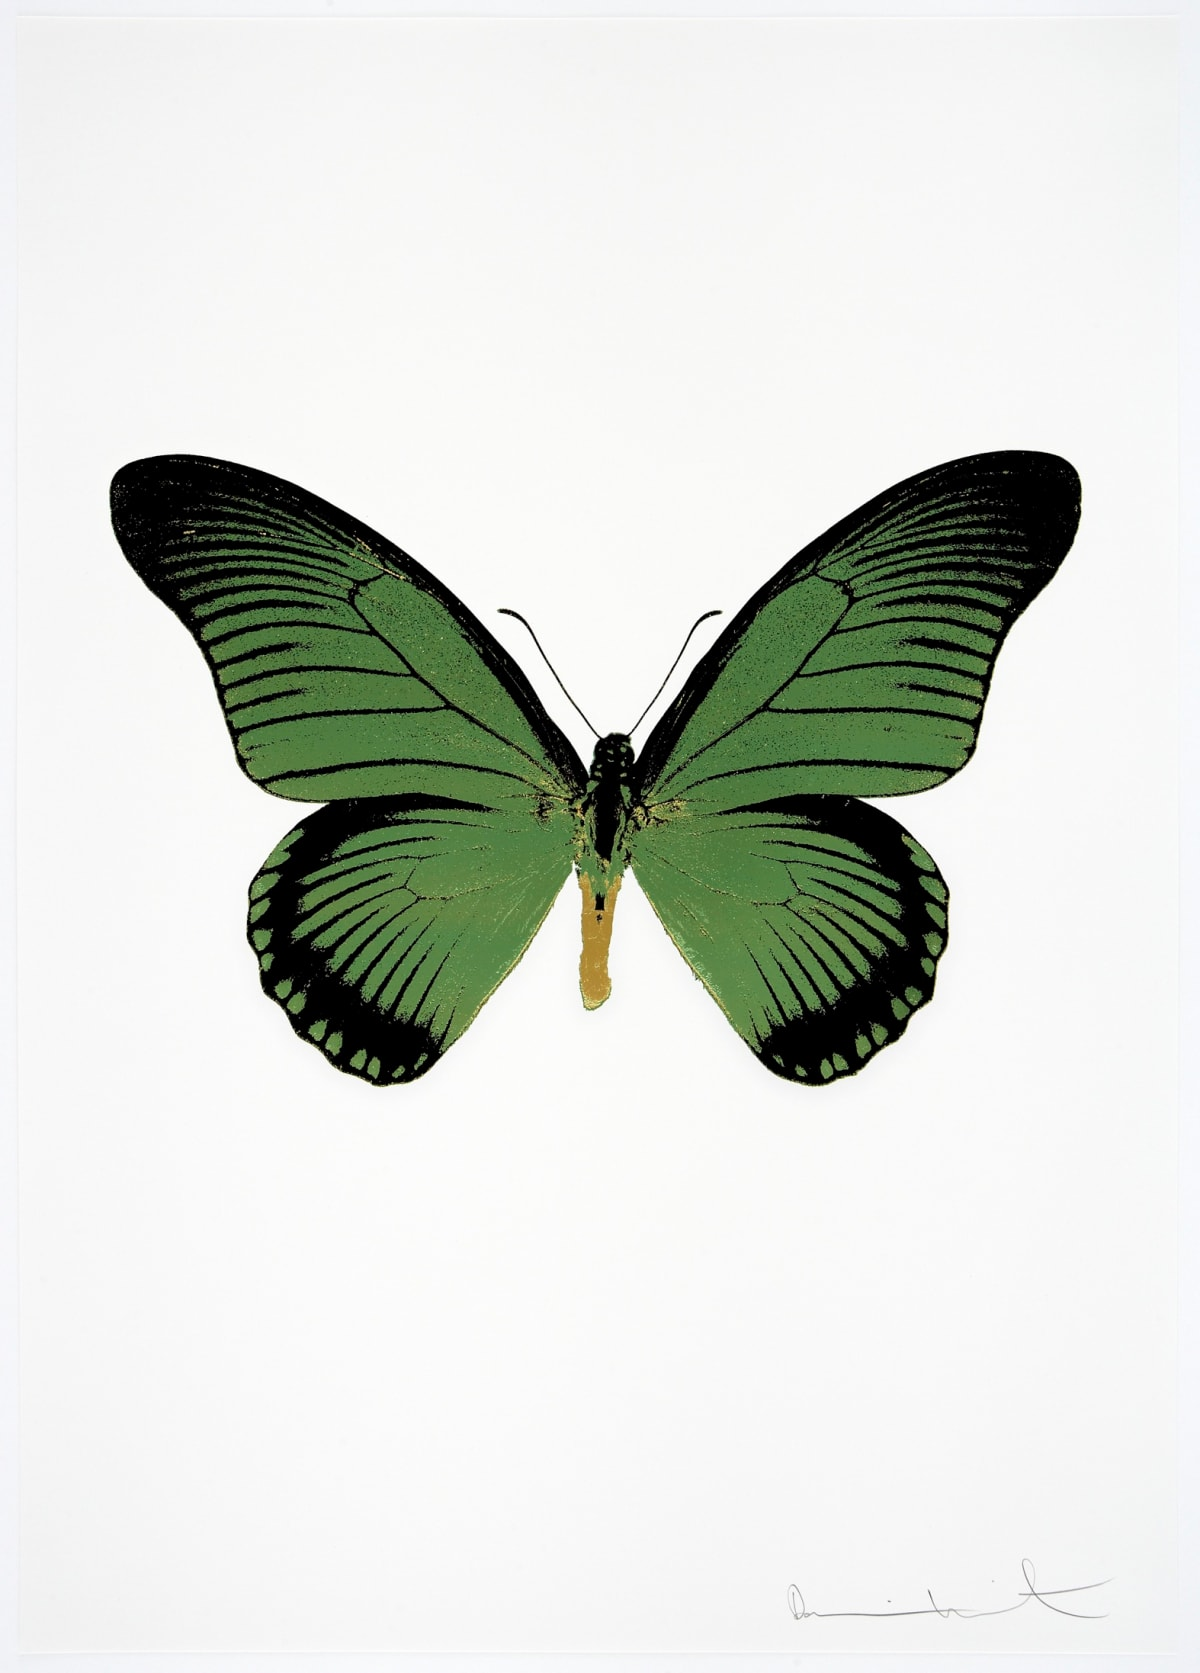 Damien Hirst The Souls IV - Leaf Green/Raven Black/Oriental Gold Damien Hirst butterfly foil print for sale Damien Hirst print for sale , 2010 3 colour foil block on 300gsm Arches 88 archival paper. Signed and numbered. Published by Paul Stolper and Other Criteria 72 x 51cm OC8035 / 1418-58 Edition of 15